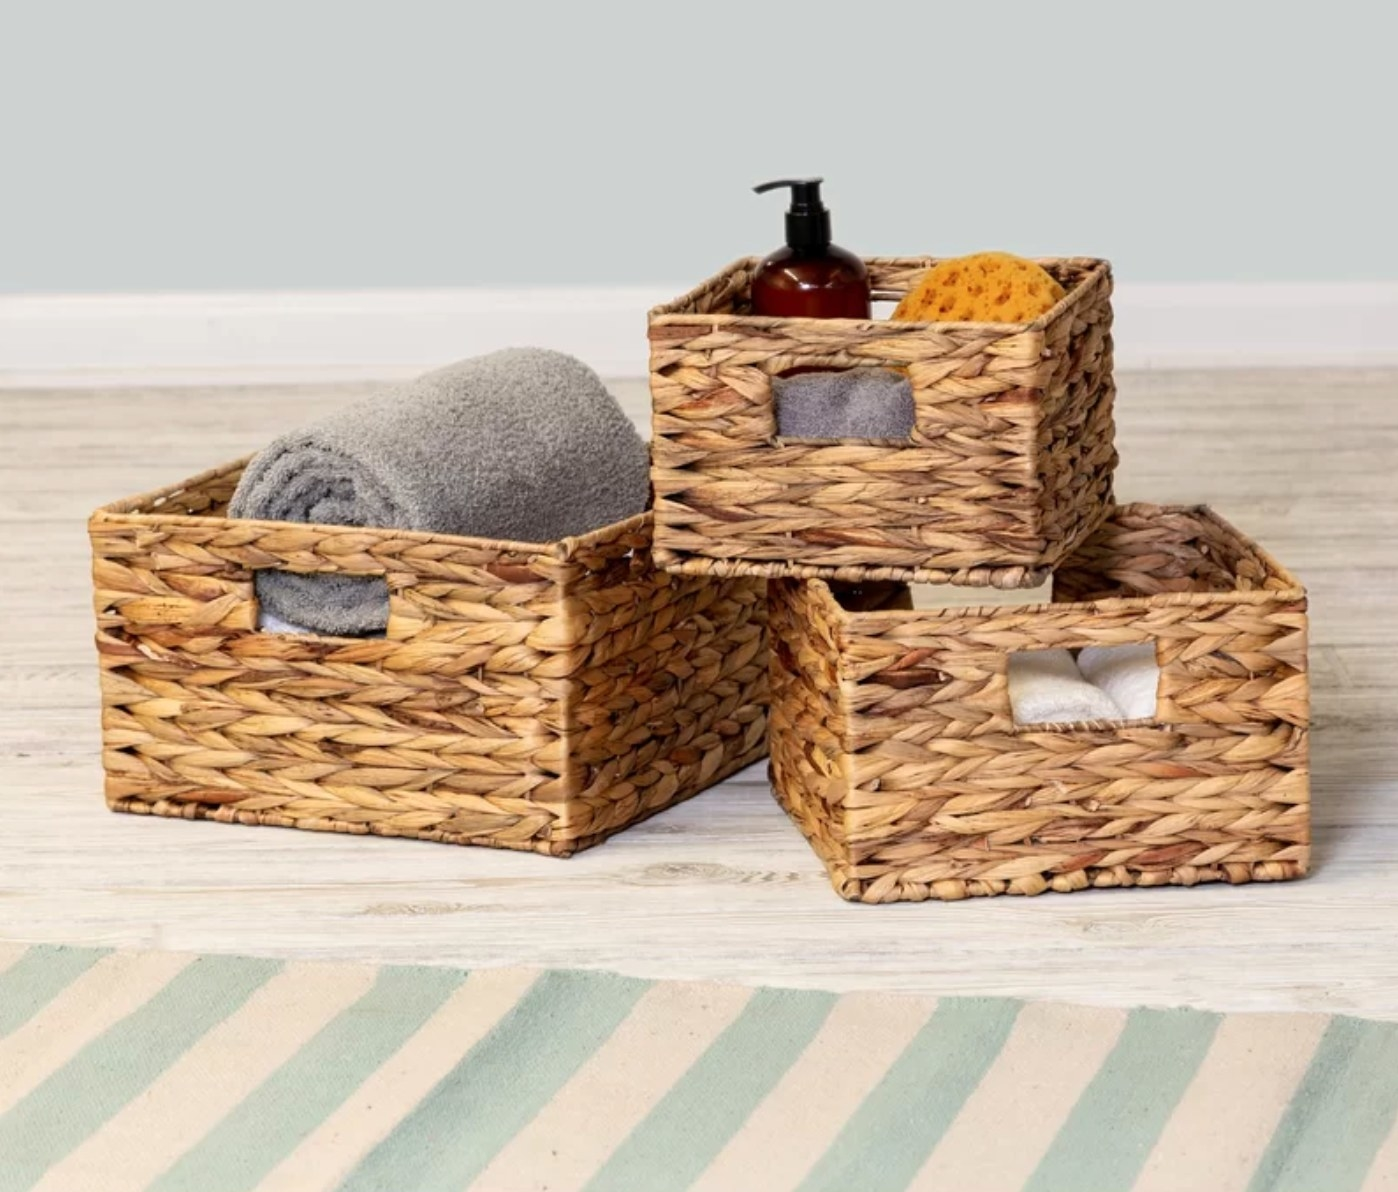 The set of wicker baskets holding toiletries and towels